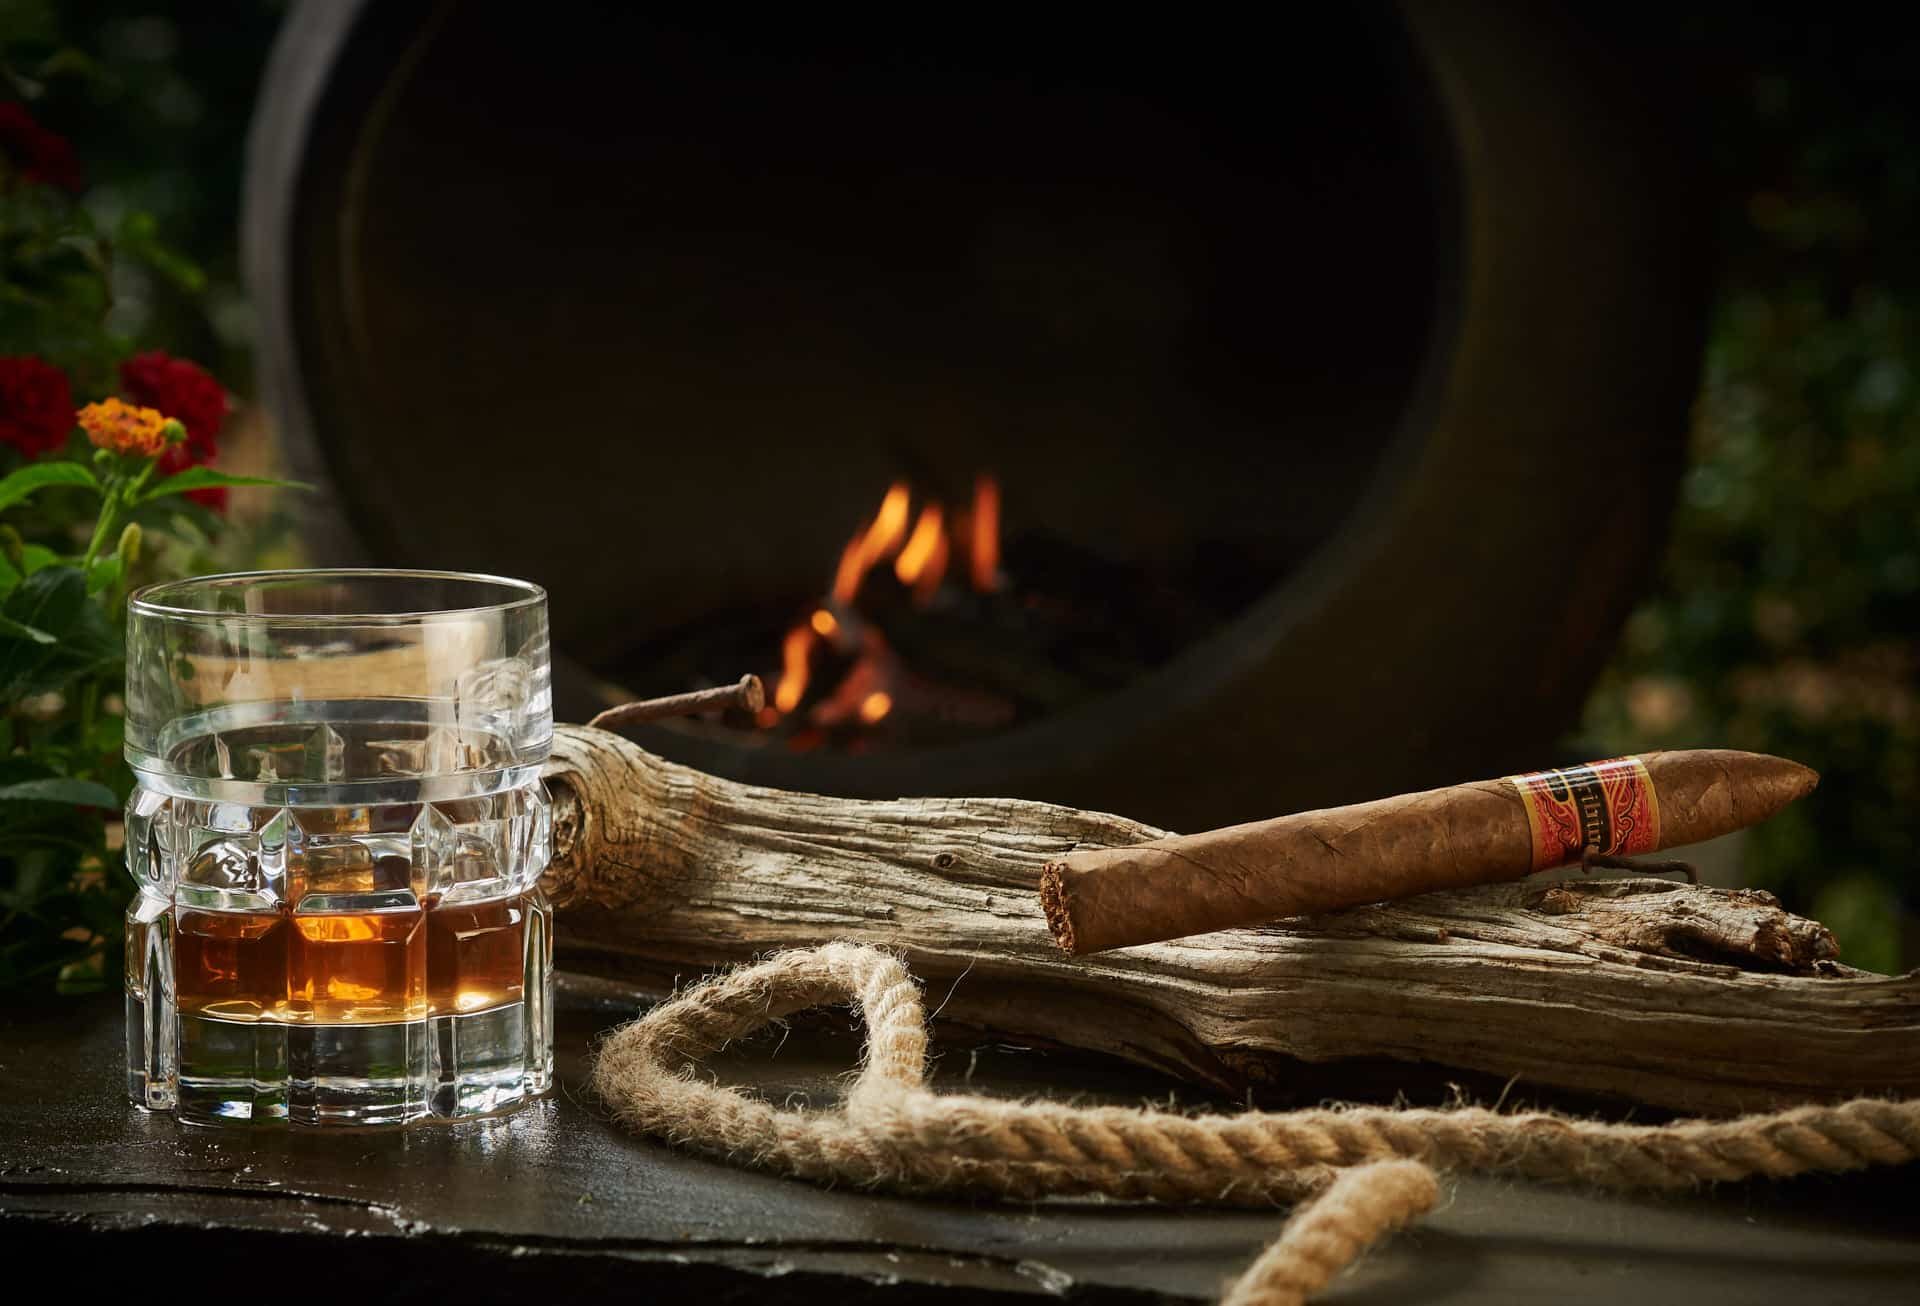 Bourbon and a cigar on a log in front of a fire.